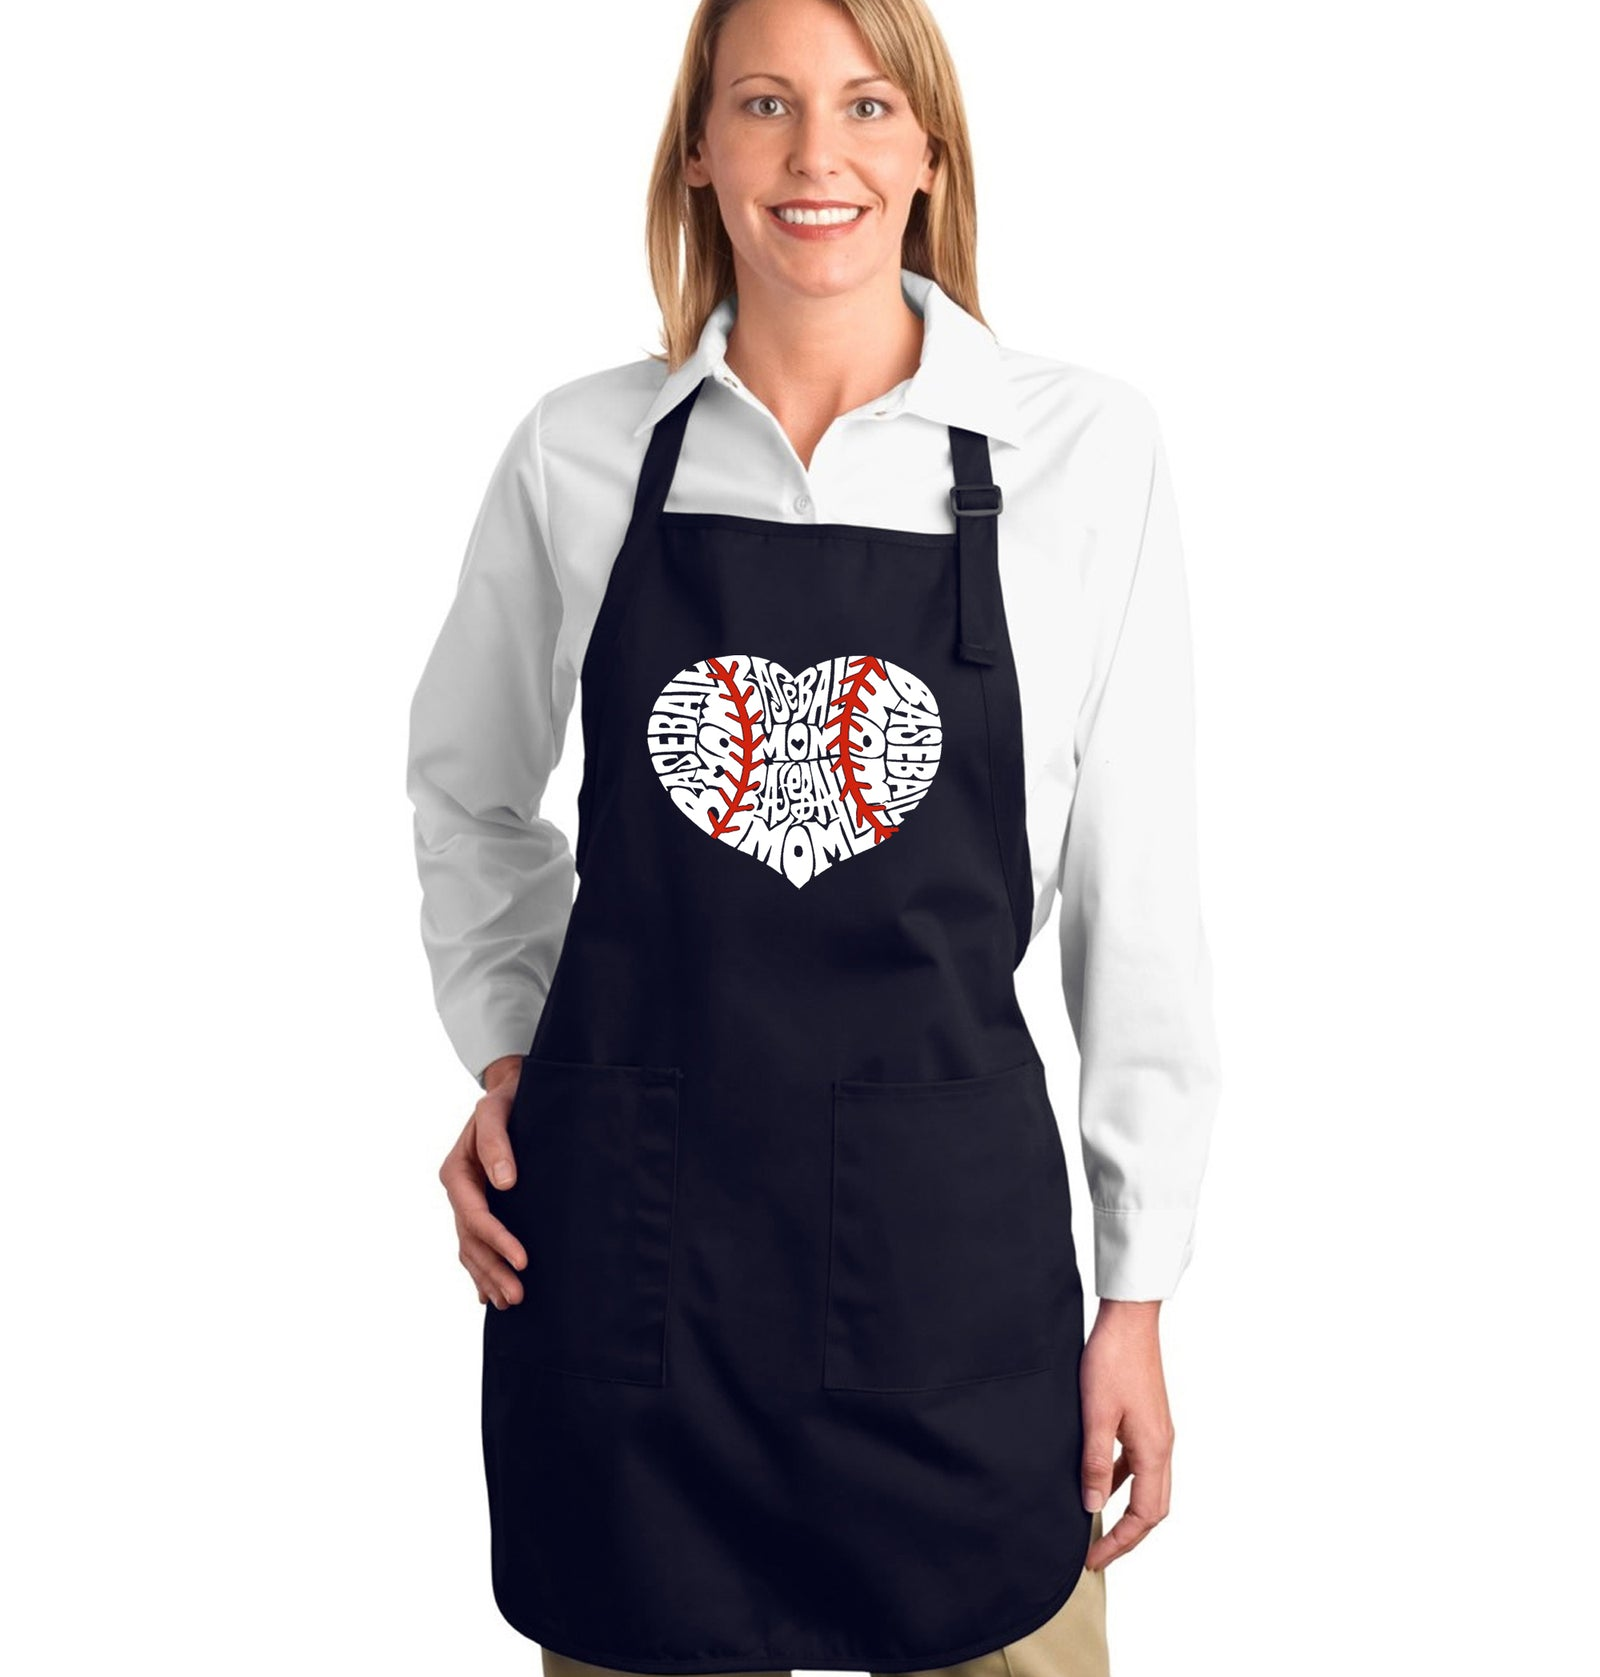 LA Pop Art Full Length Word Art Apron - Baseball Mom